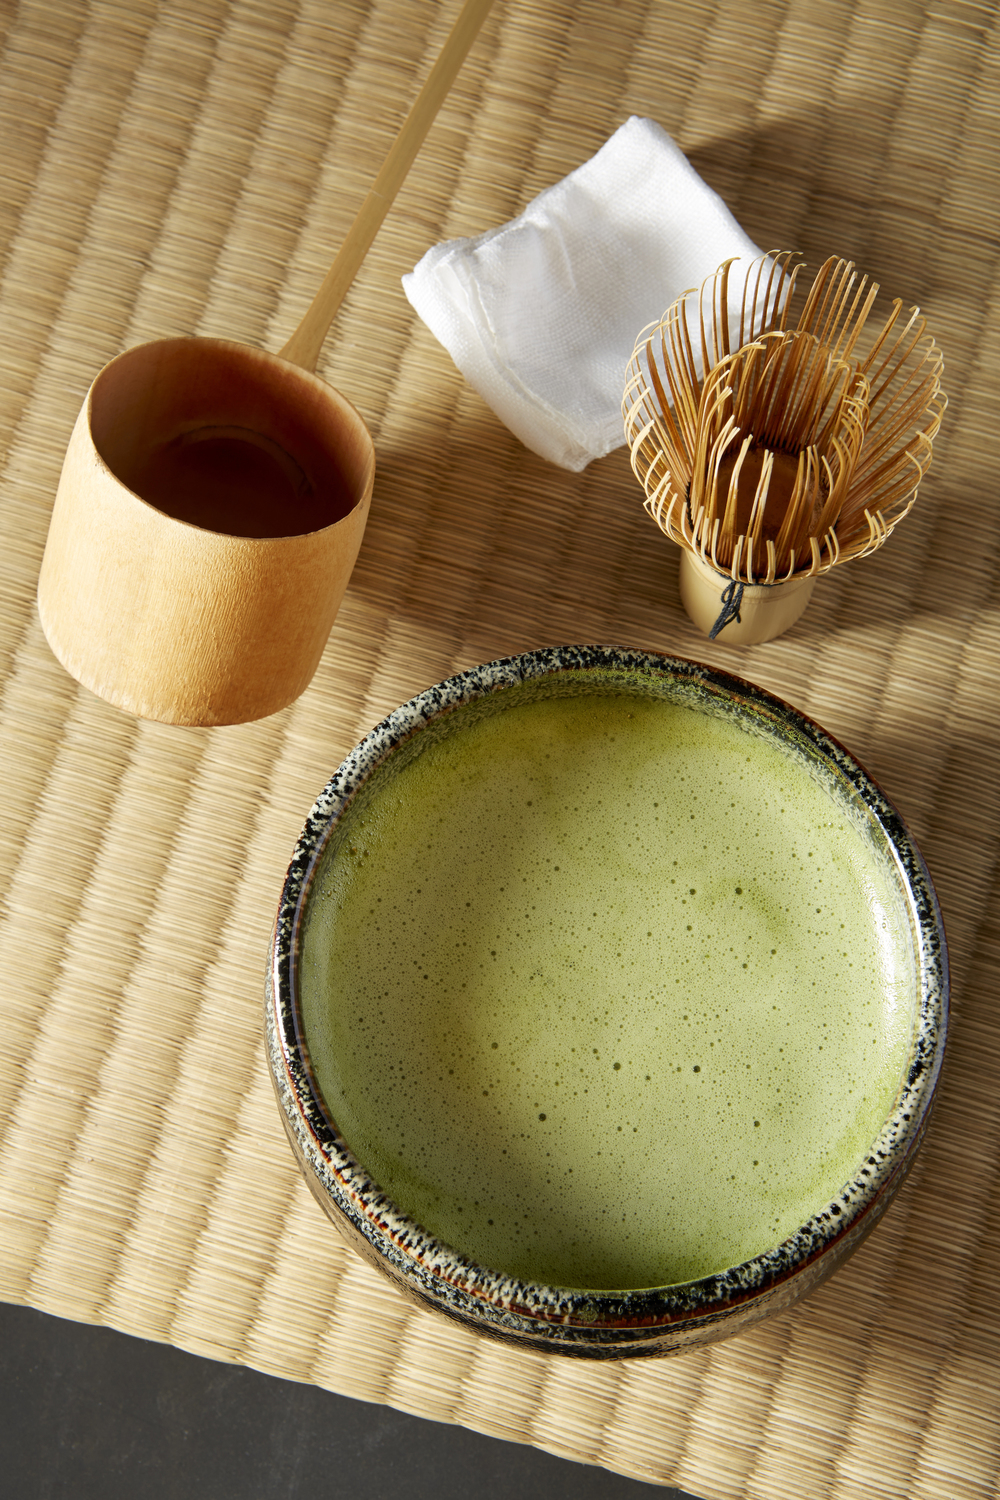 """The host also chooses a beautiful ceramic from which matcha is drunk. In winter a deeper bowl keeps the heat longer. In harmonious hand movements, the host whisks the tea with hot water, placing the bowl next to the guest. The guest drinks the tea, then admires the bowl."""